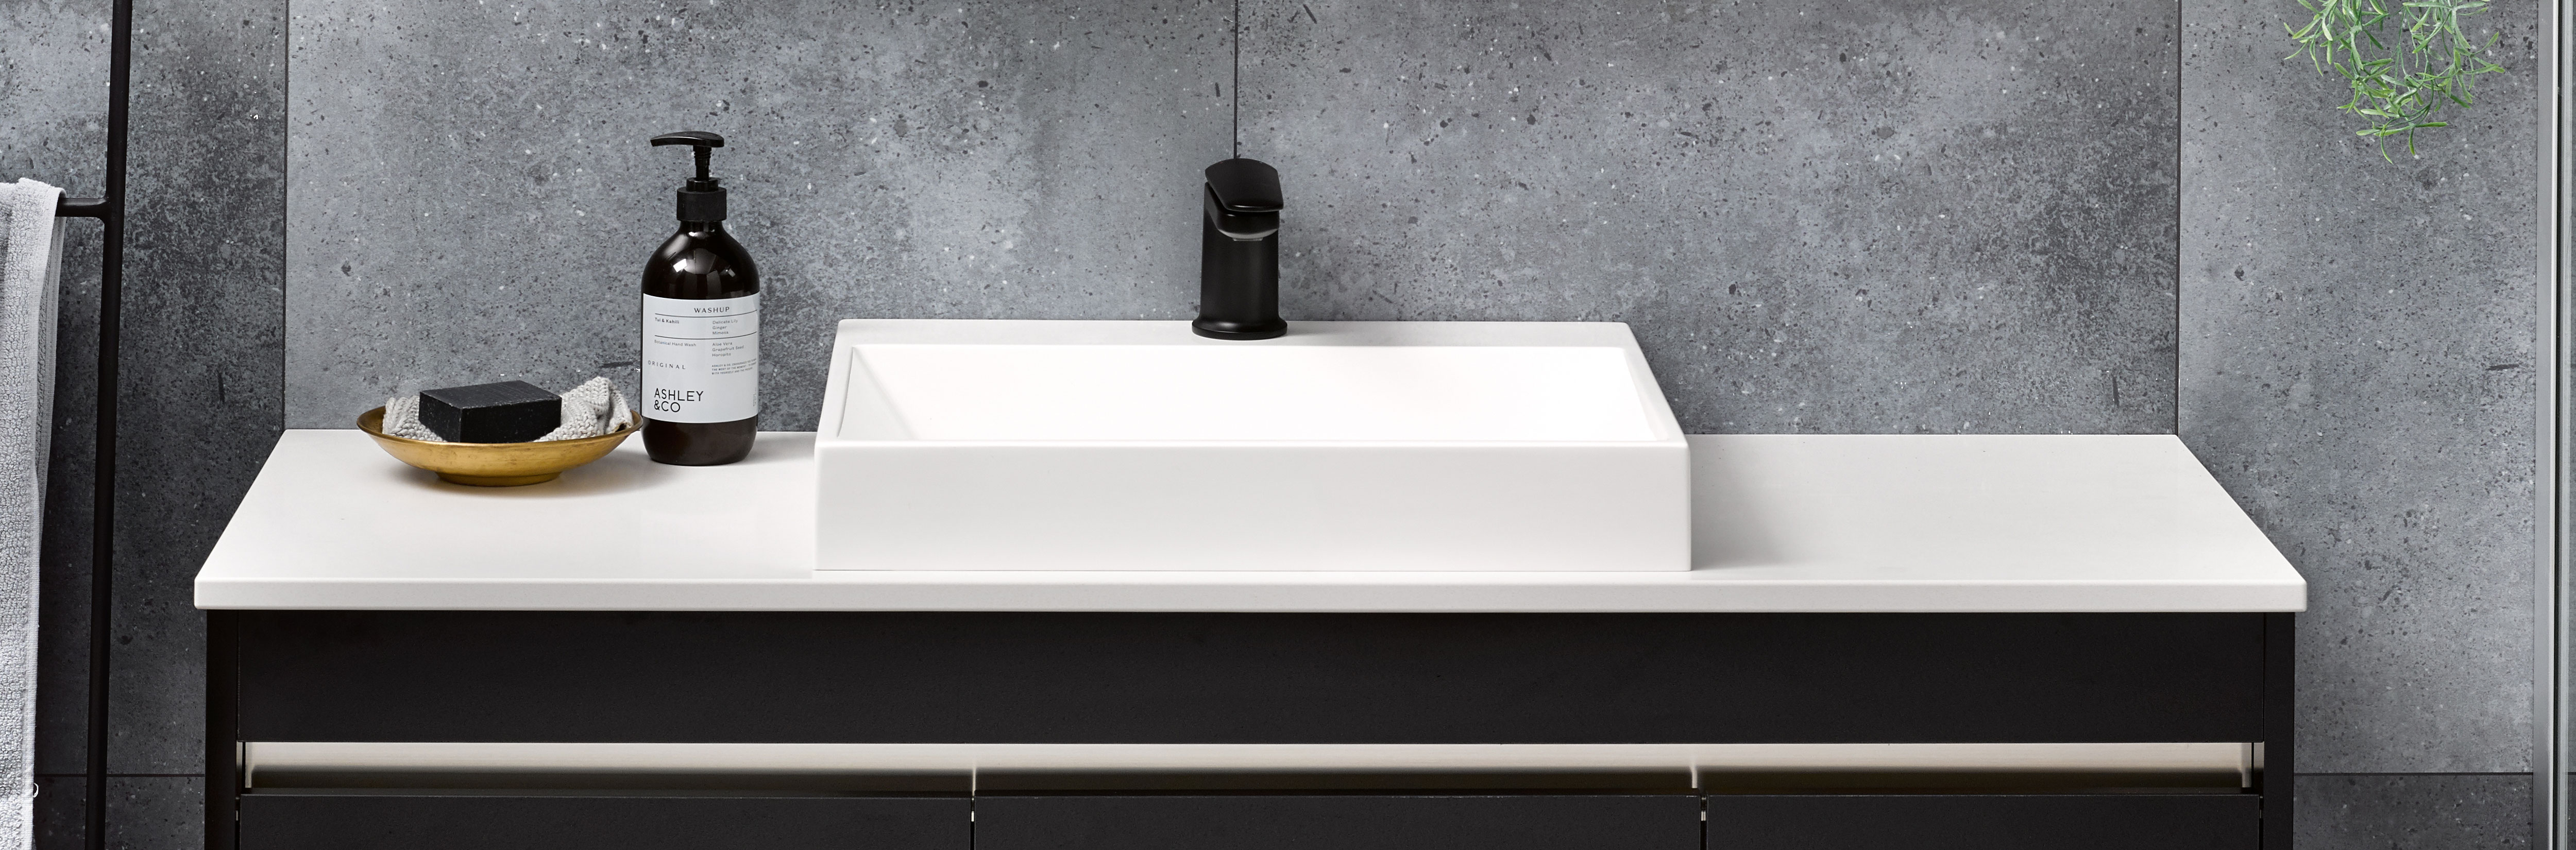 Bathroom Sinks Nz athena bathrooms | bathroomware designed for new zealand homes